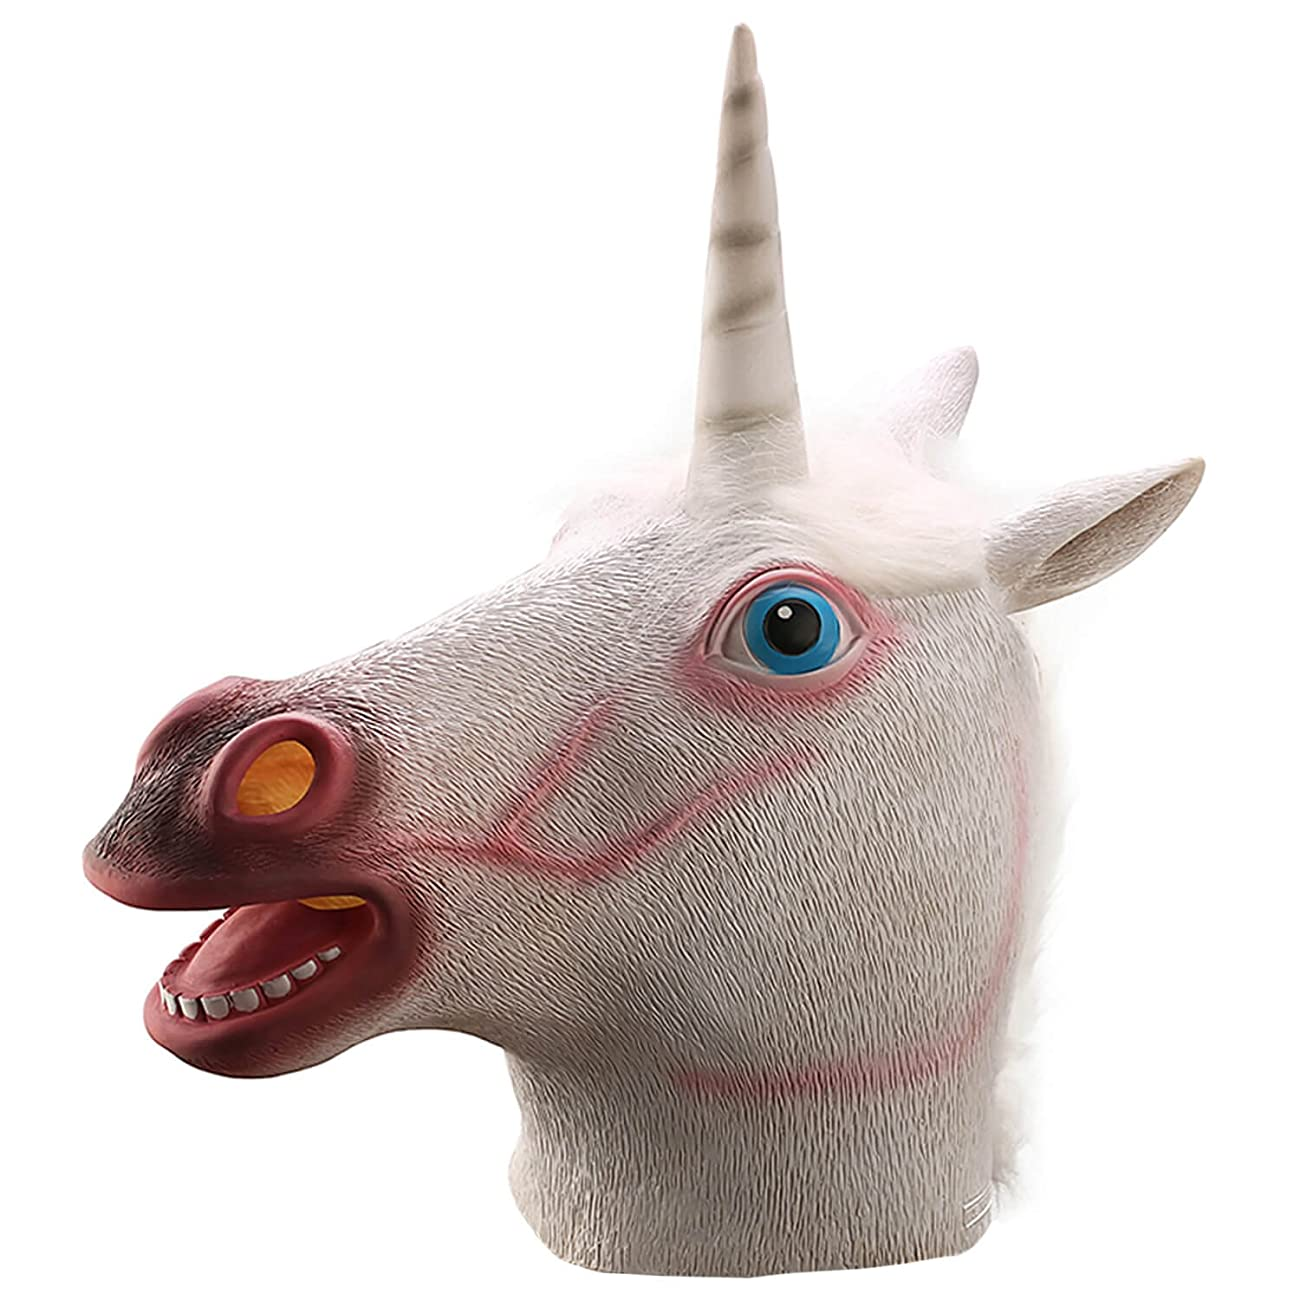 Ylovetoys Unicorn Head Mask Halloween Costume Party Novelty Latex Animal Mask 0